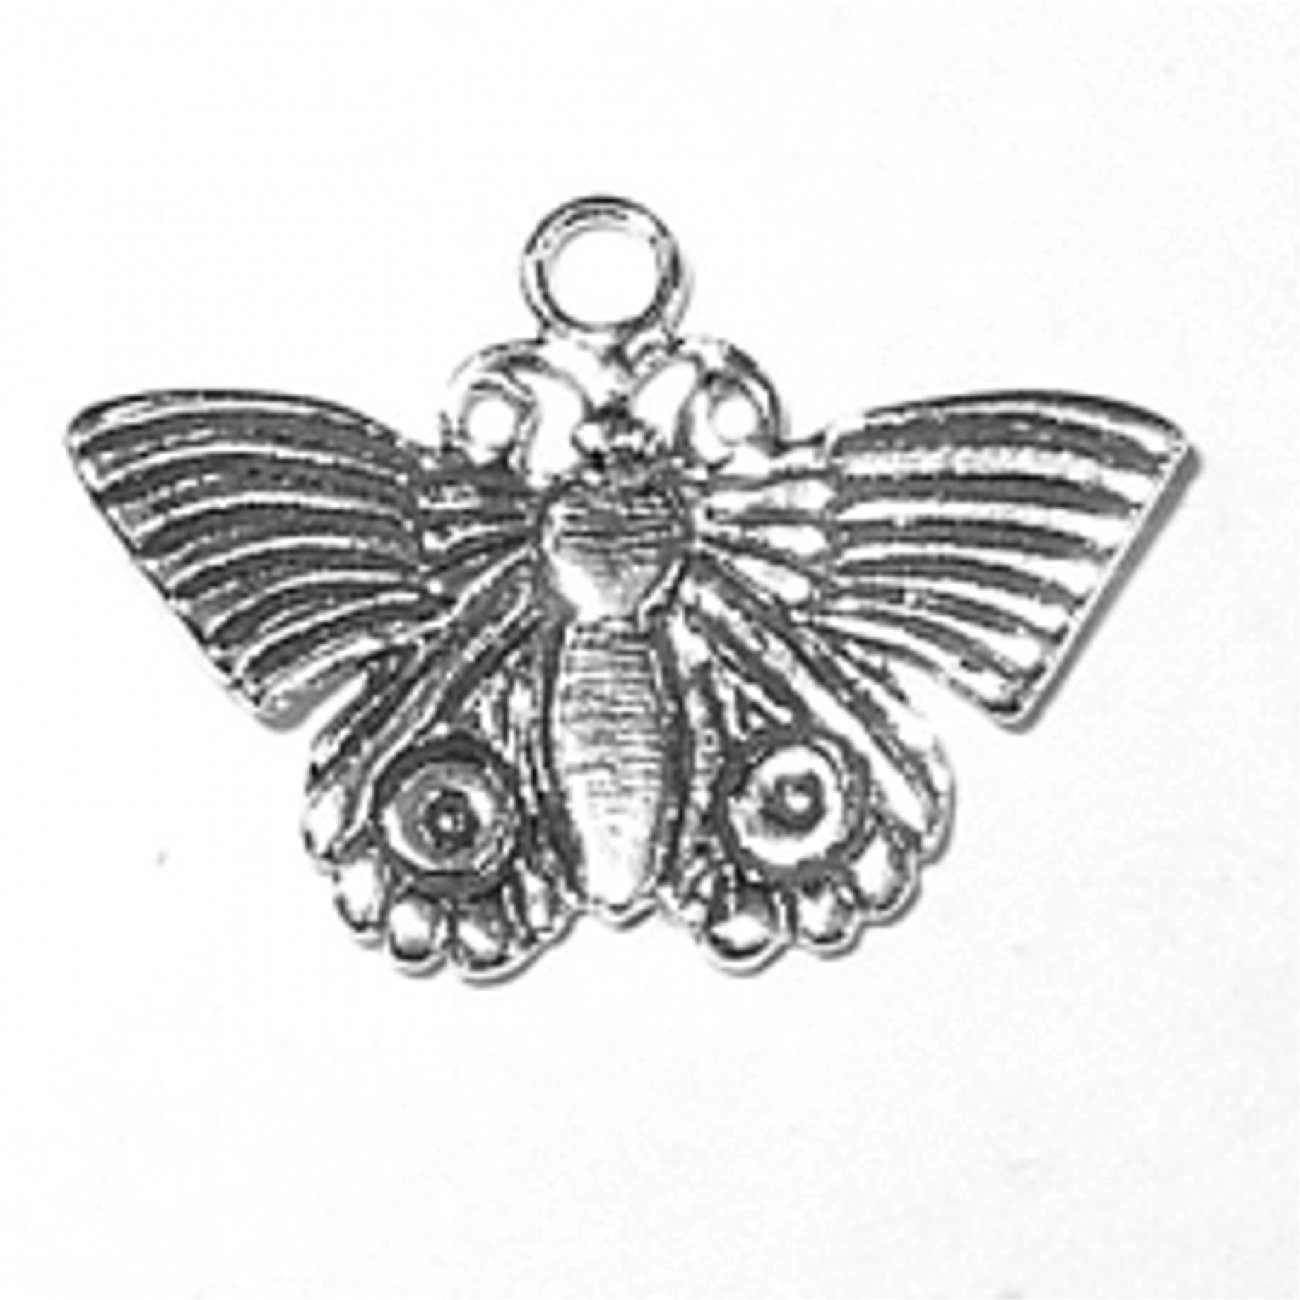 Sterling Silver 7 4.5mm Charm Bracelet With Attached Thin Butterfly With Curved Up Wings Charm